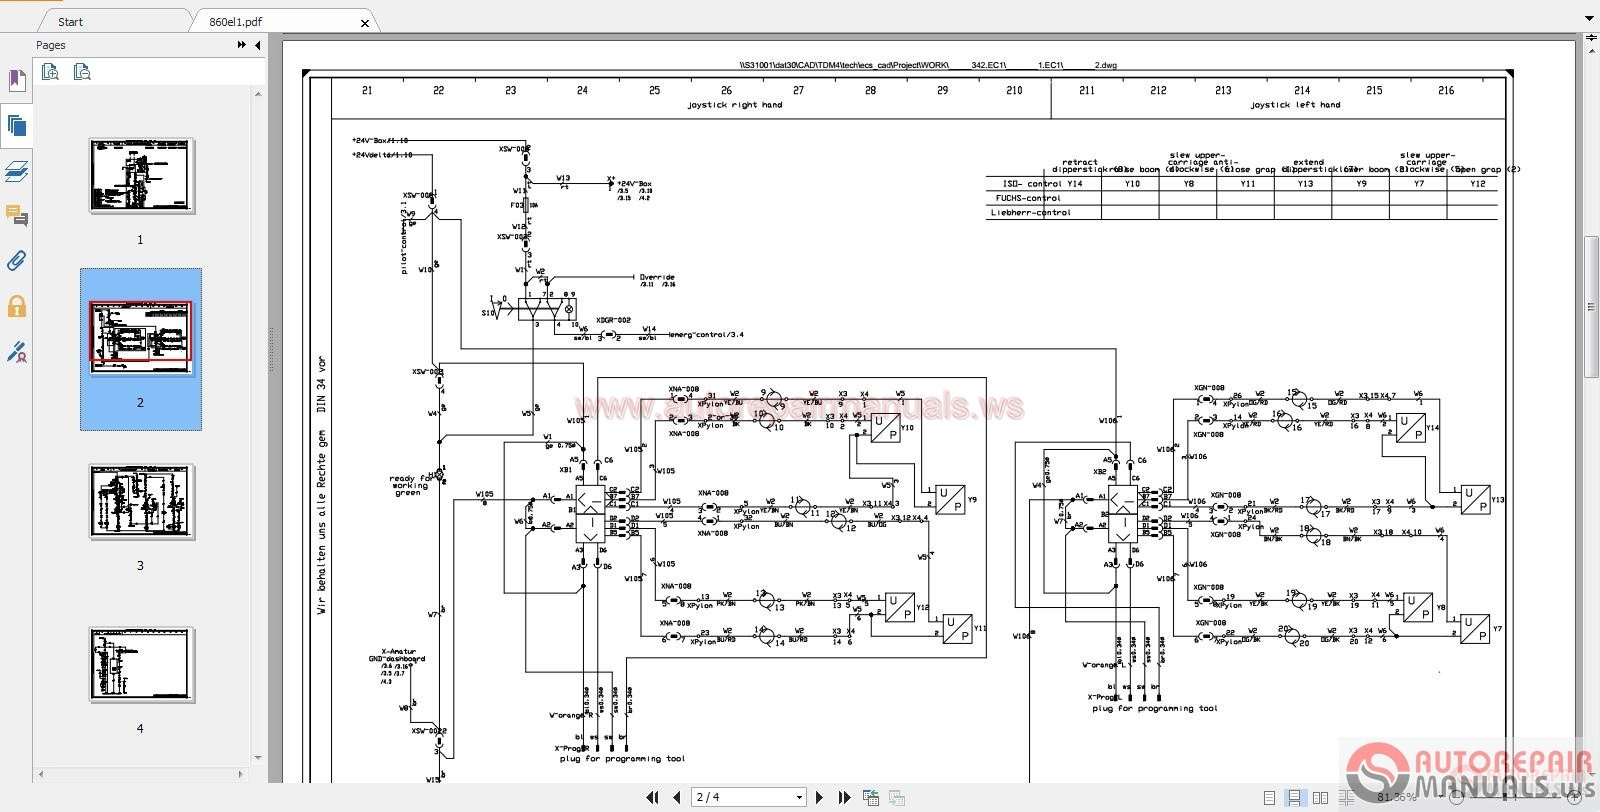 raven cable wiring diagrams best part of wiring diagramraven 660 wiring diagram wiring libraryraven cable wiring diagrams simple wiring diagram page ricon wiring diagrams